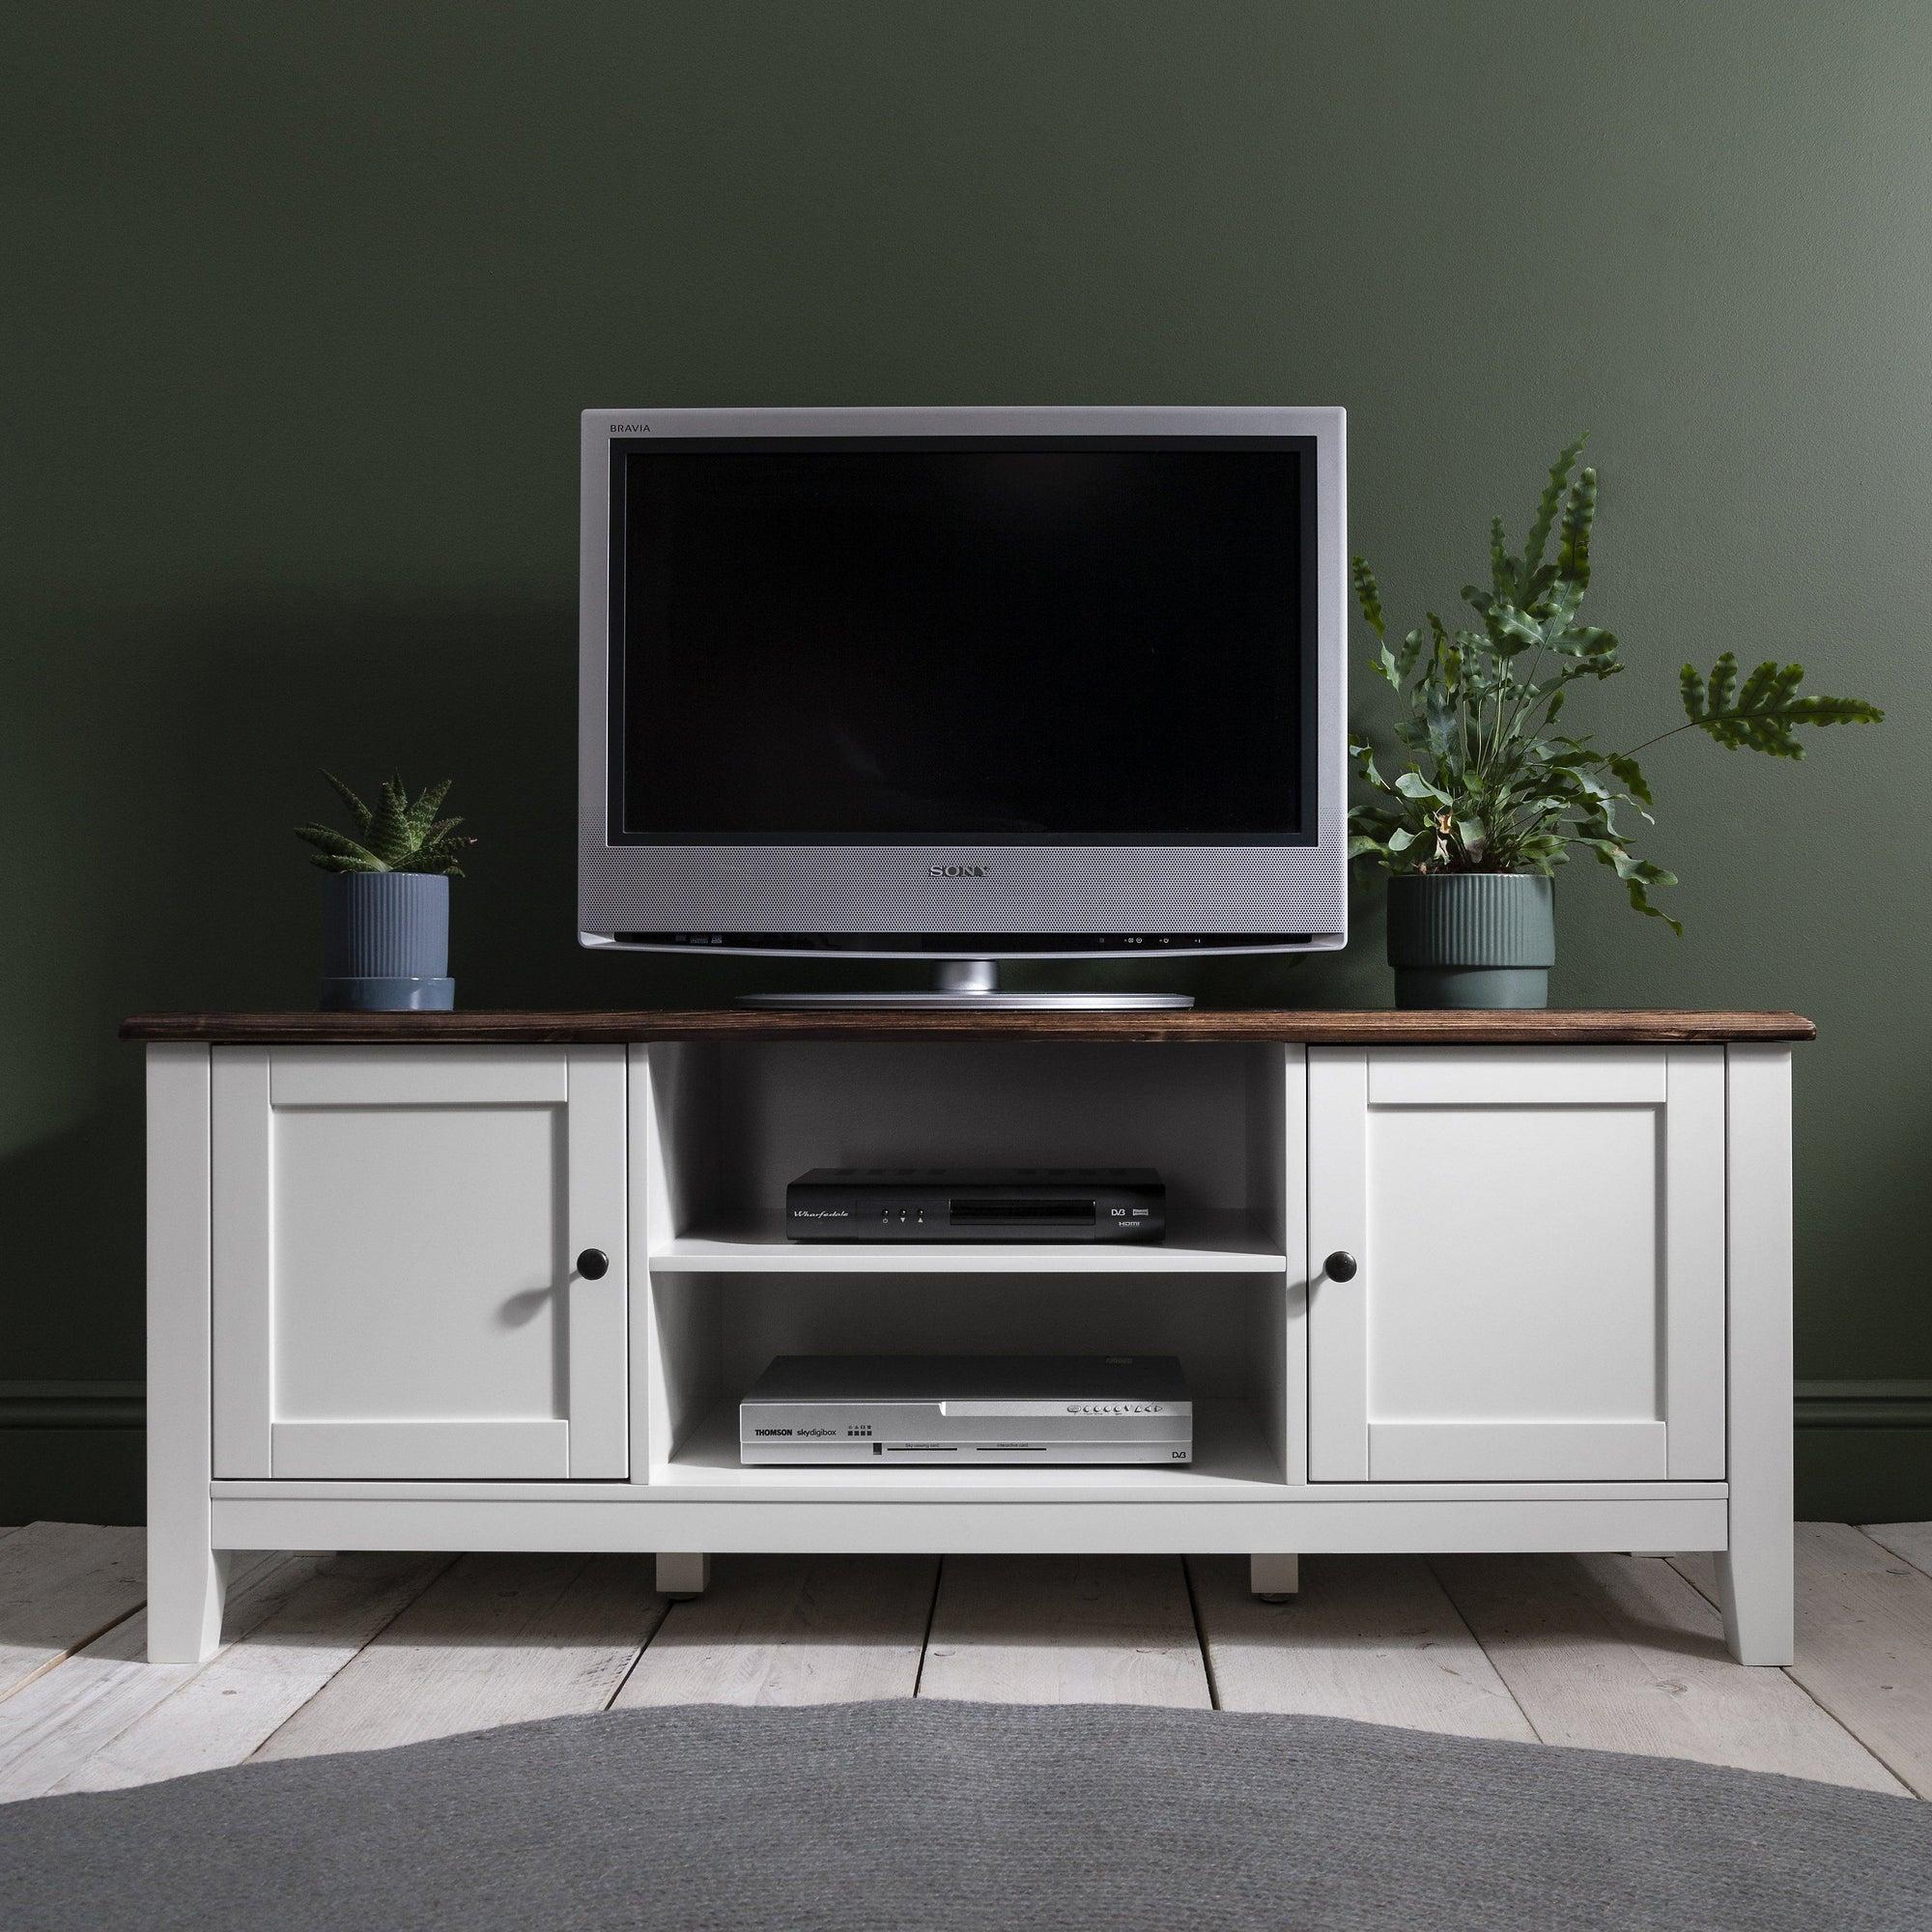 TV Unit with storage - Chatsworth - Laura James